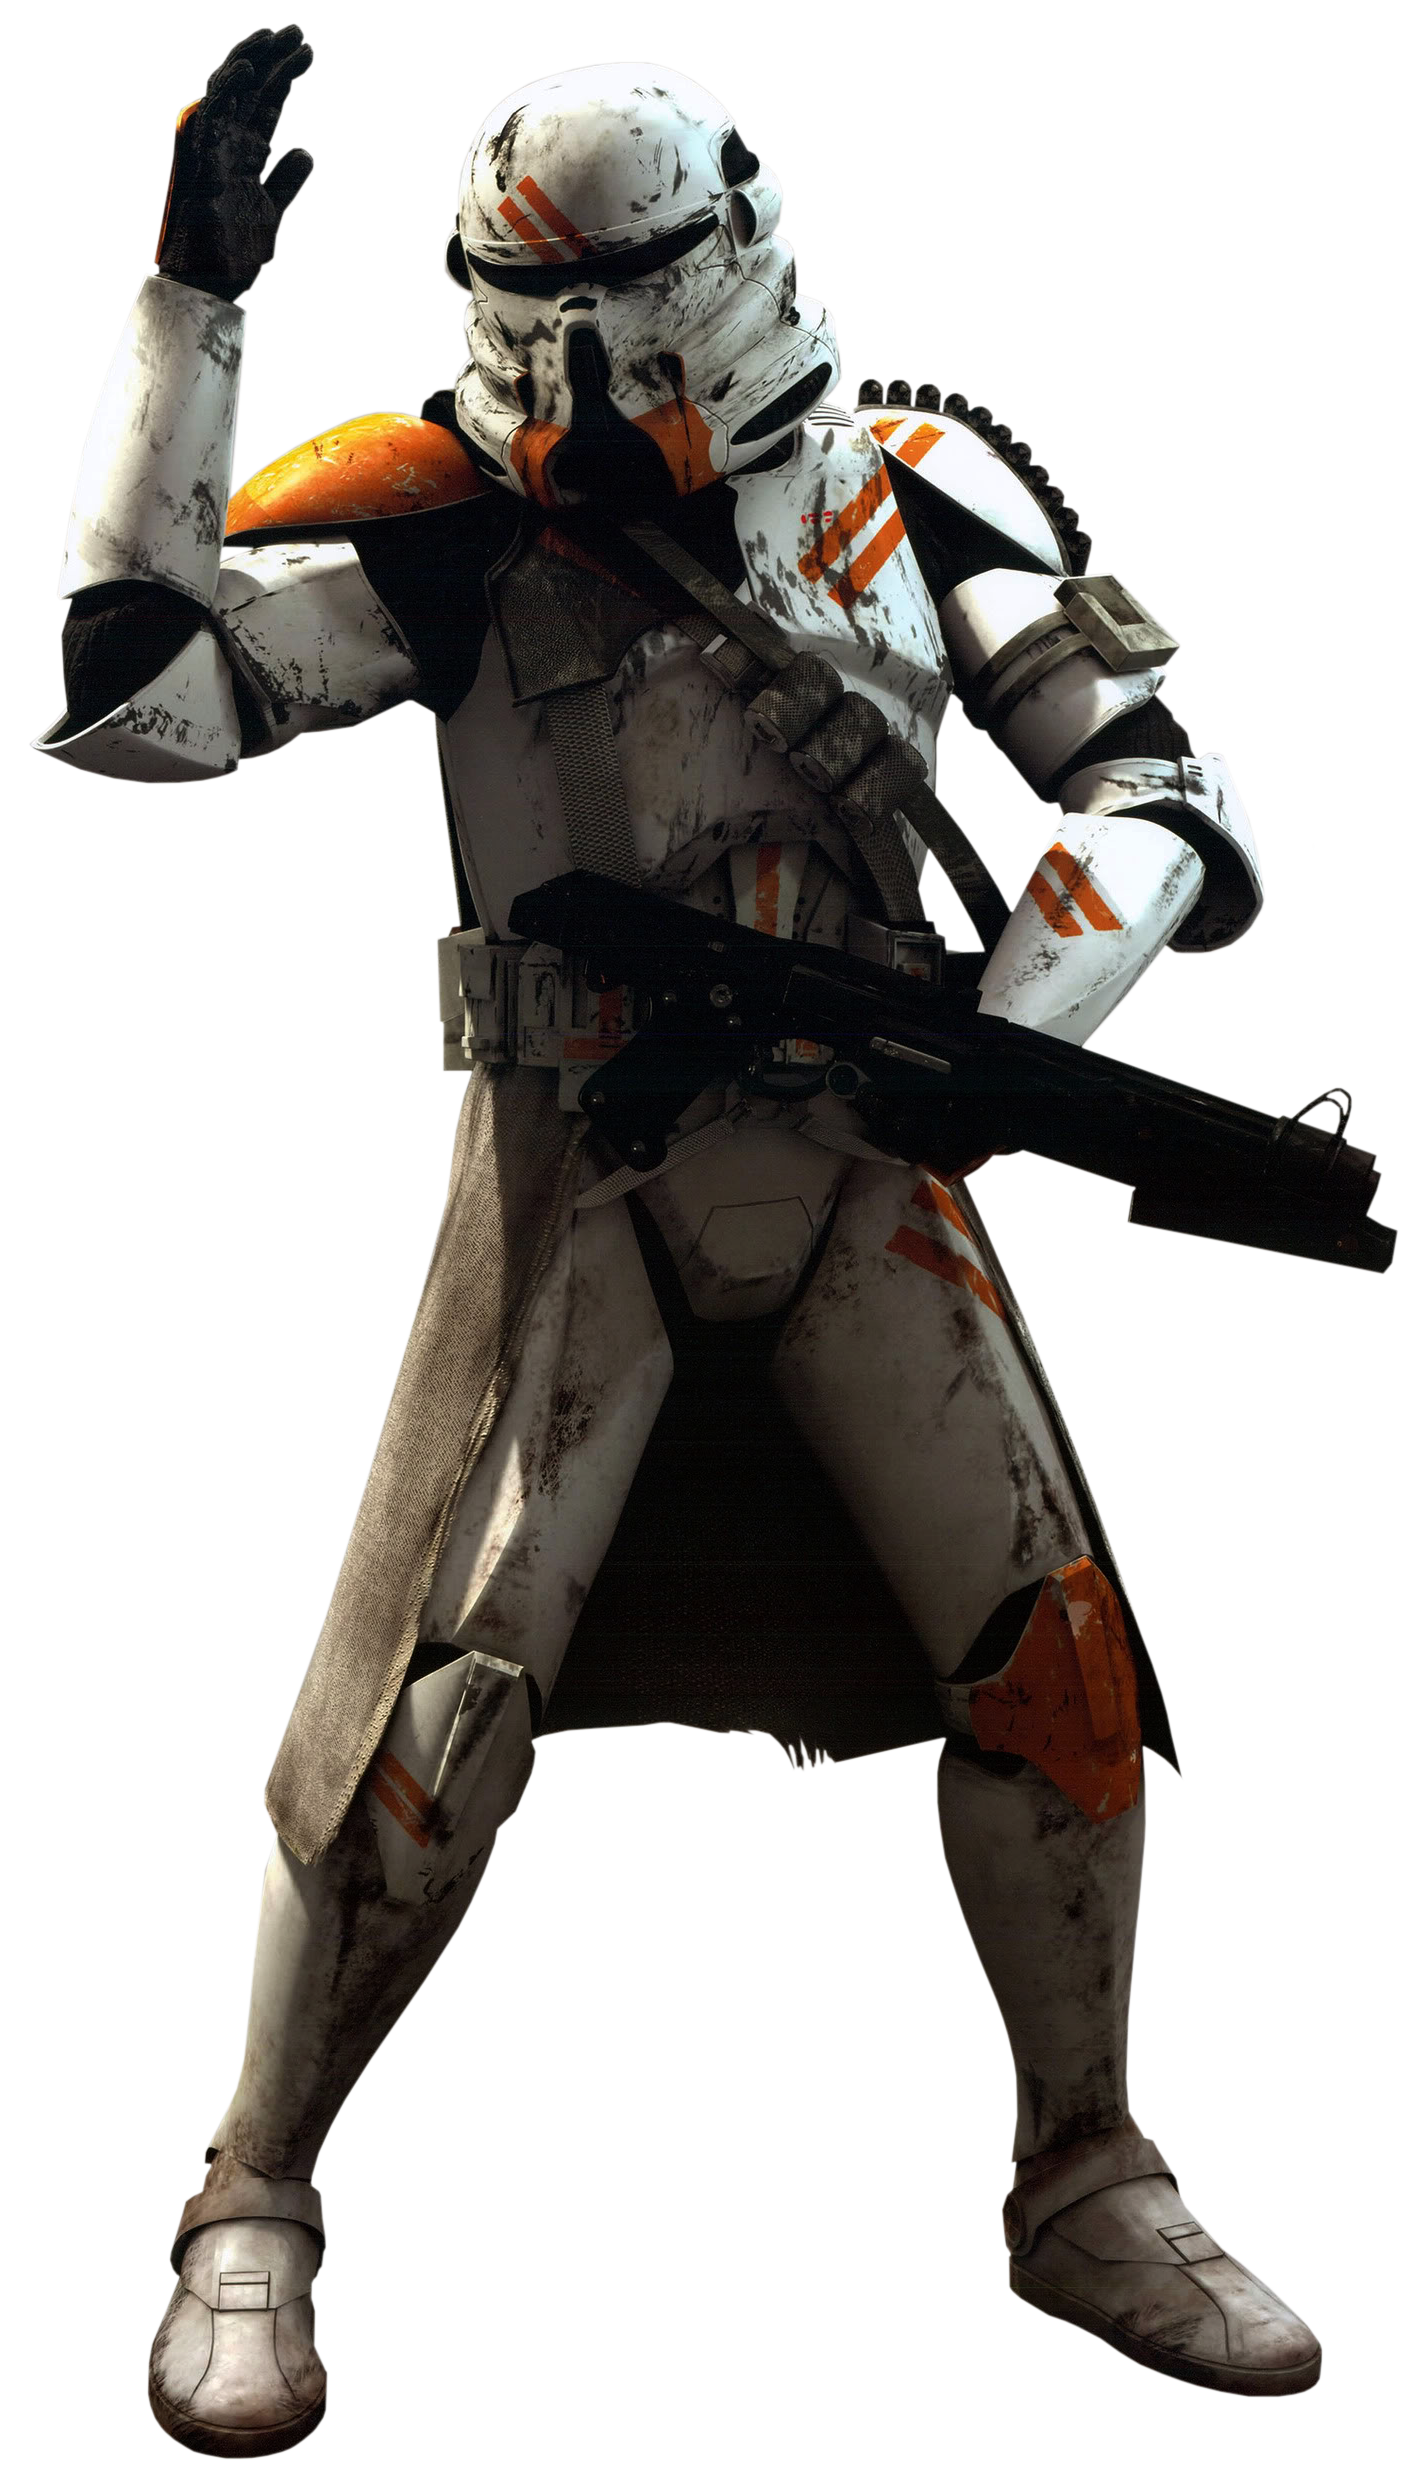 Star Clone Wars Figurine Costume Stormtrooper The PNG Image